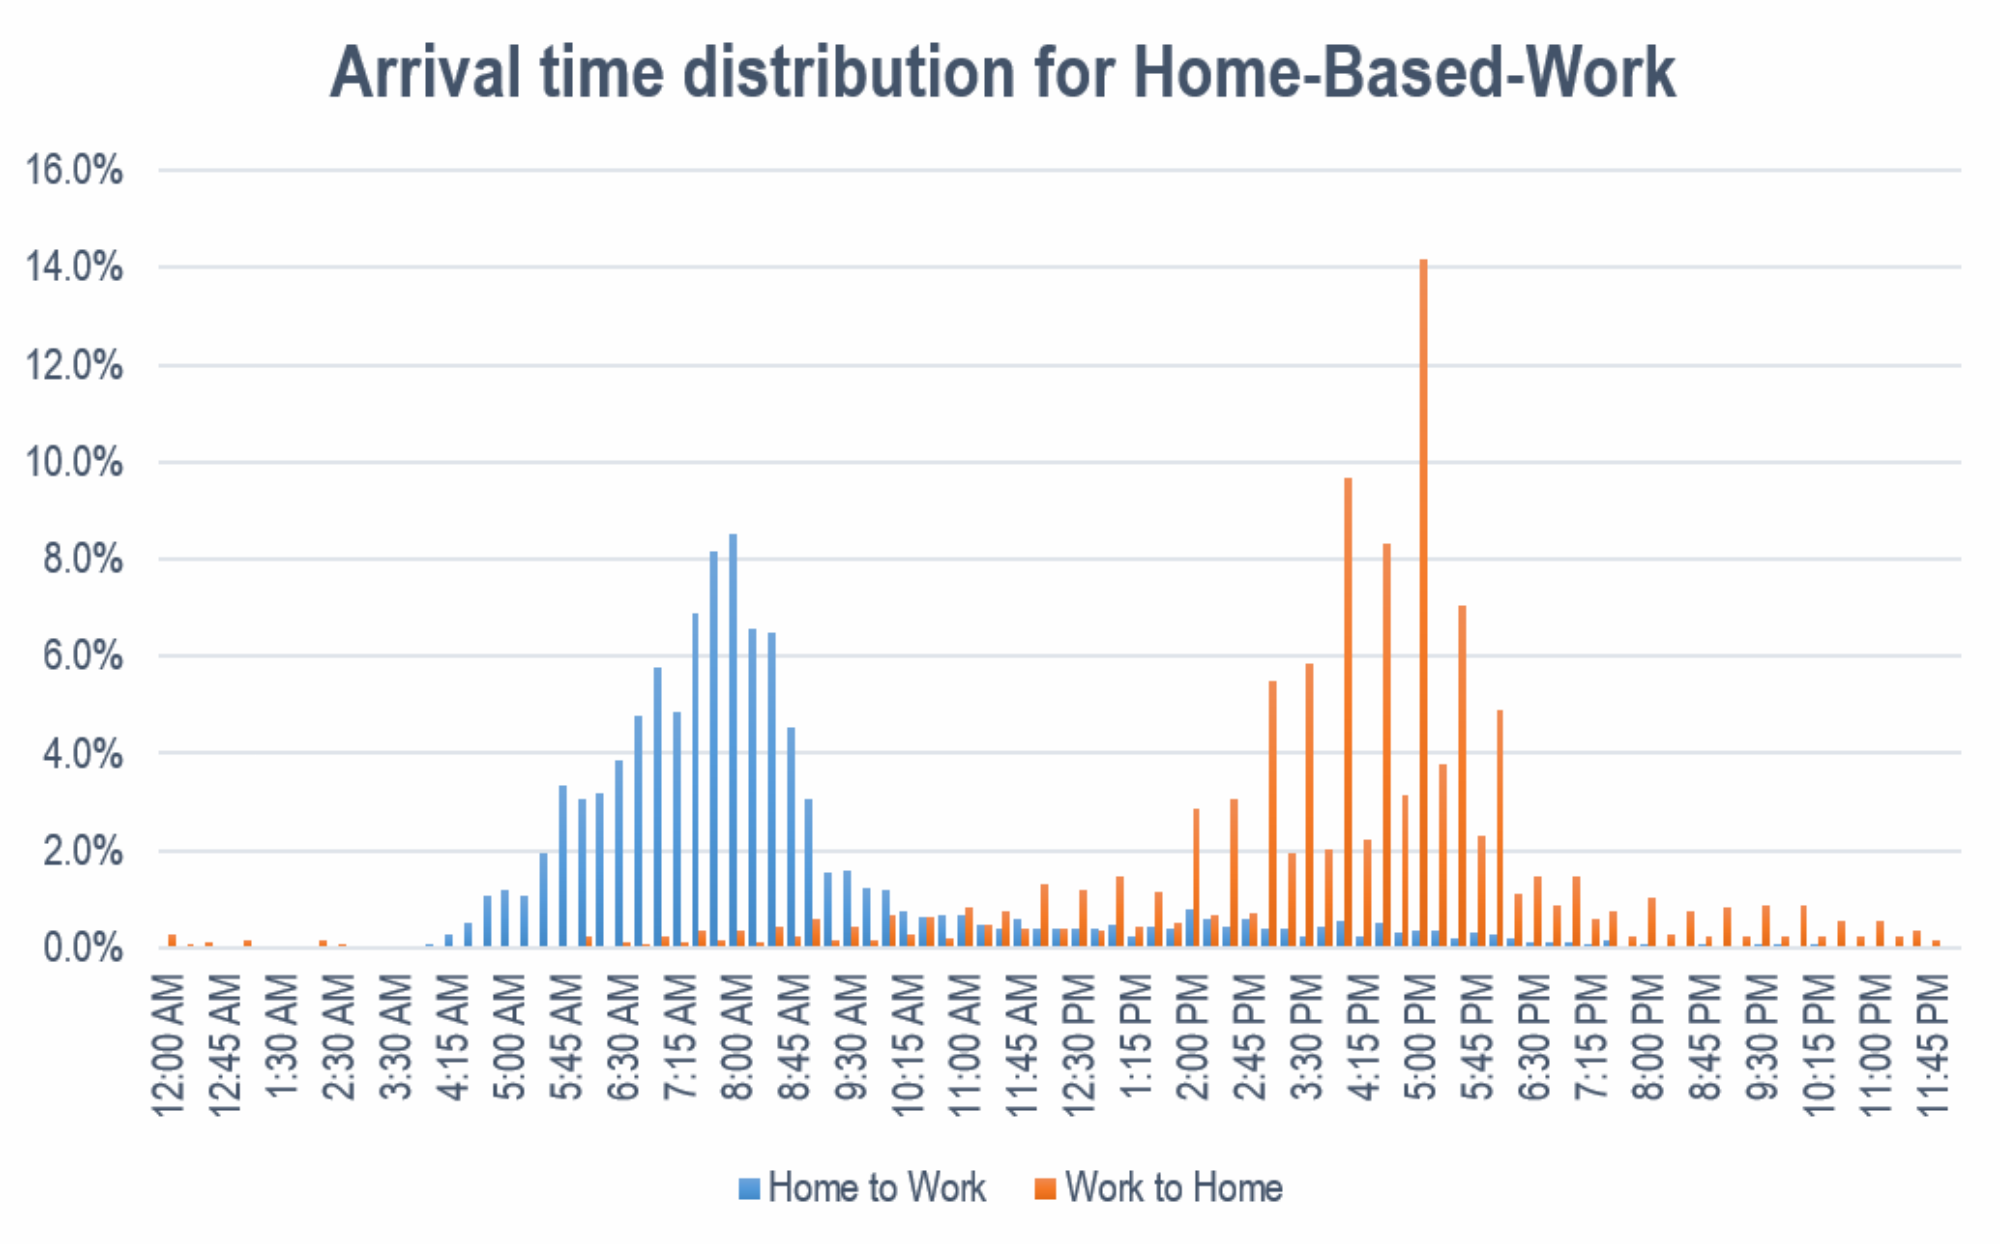 Figure: Arrival time distribution for Home-Based-Work